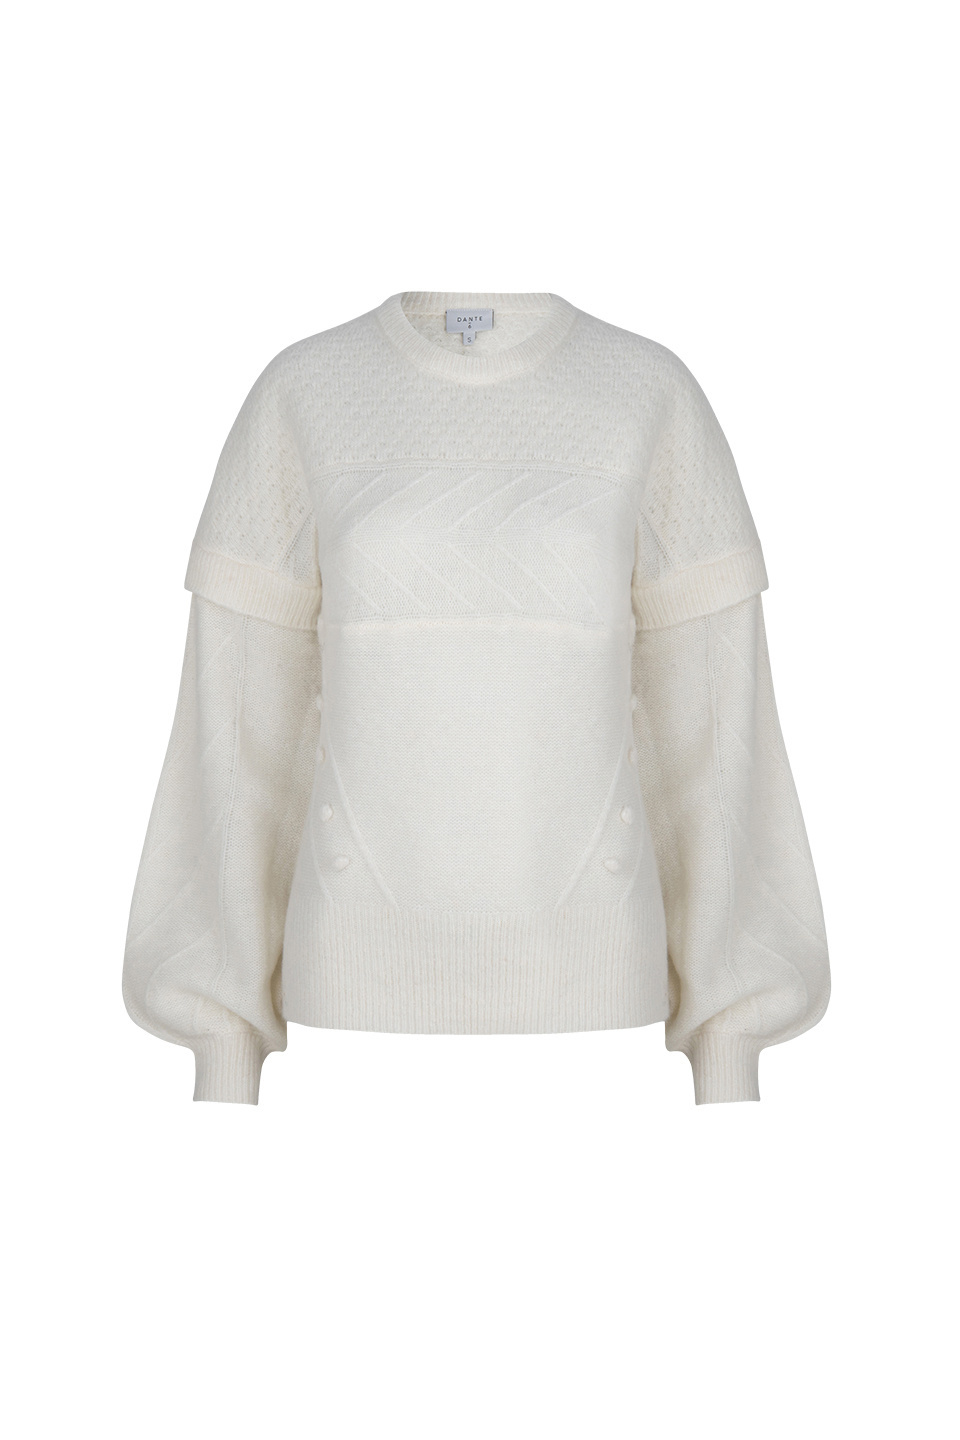 Oakly Knit Cable Sweater - Bone-1